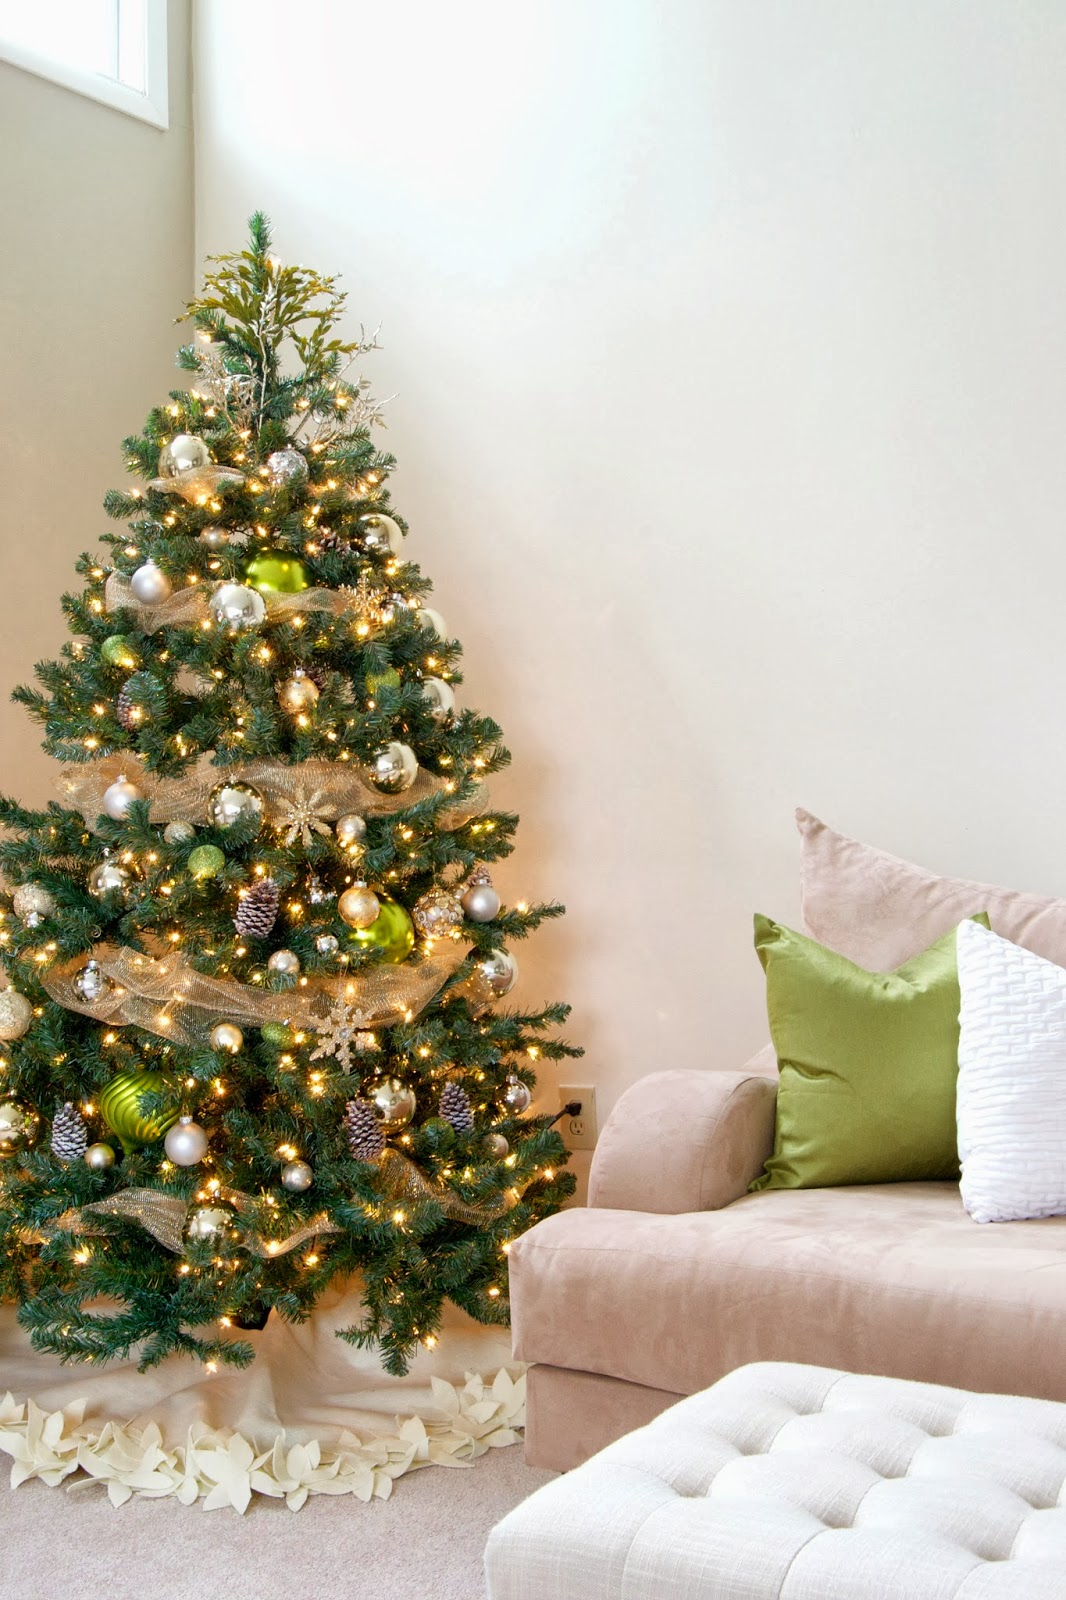 Green and gold christmas tree decor ideas